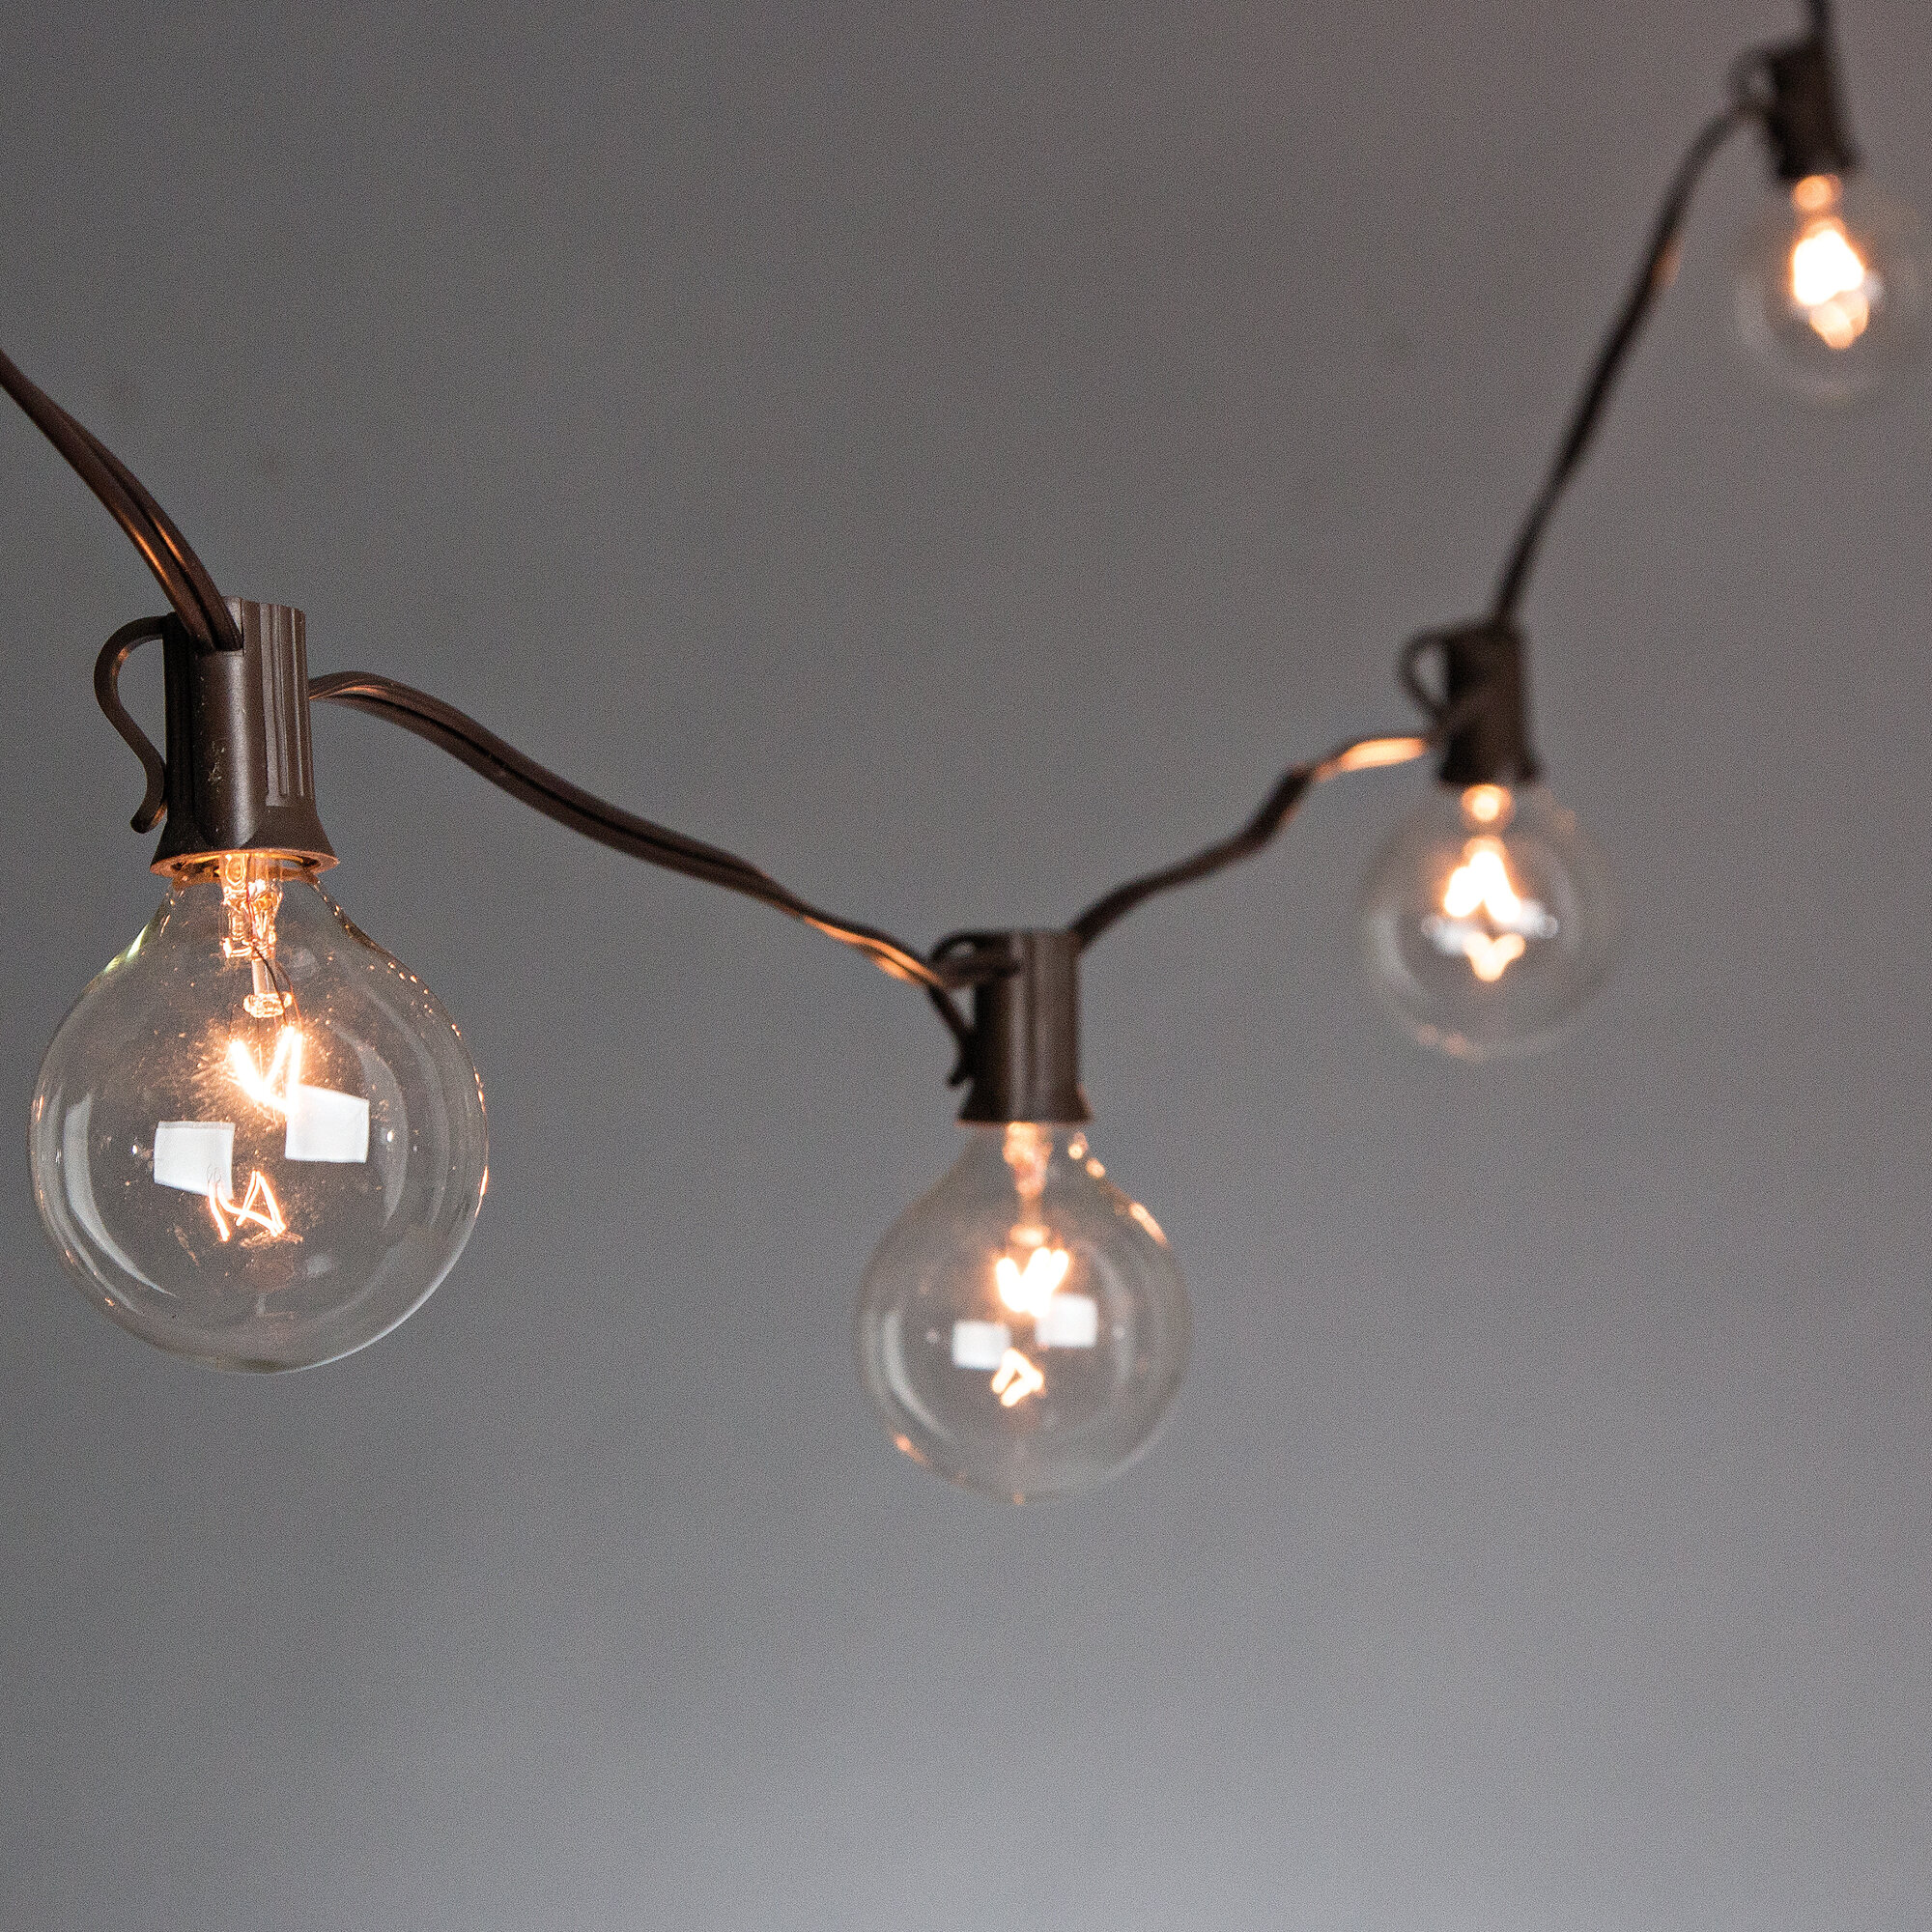 The Gerson Companies 10-Light 9 ft. Globe String Lights & Reviews ...